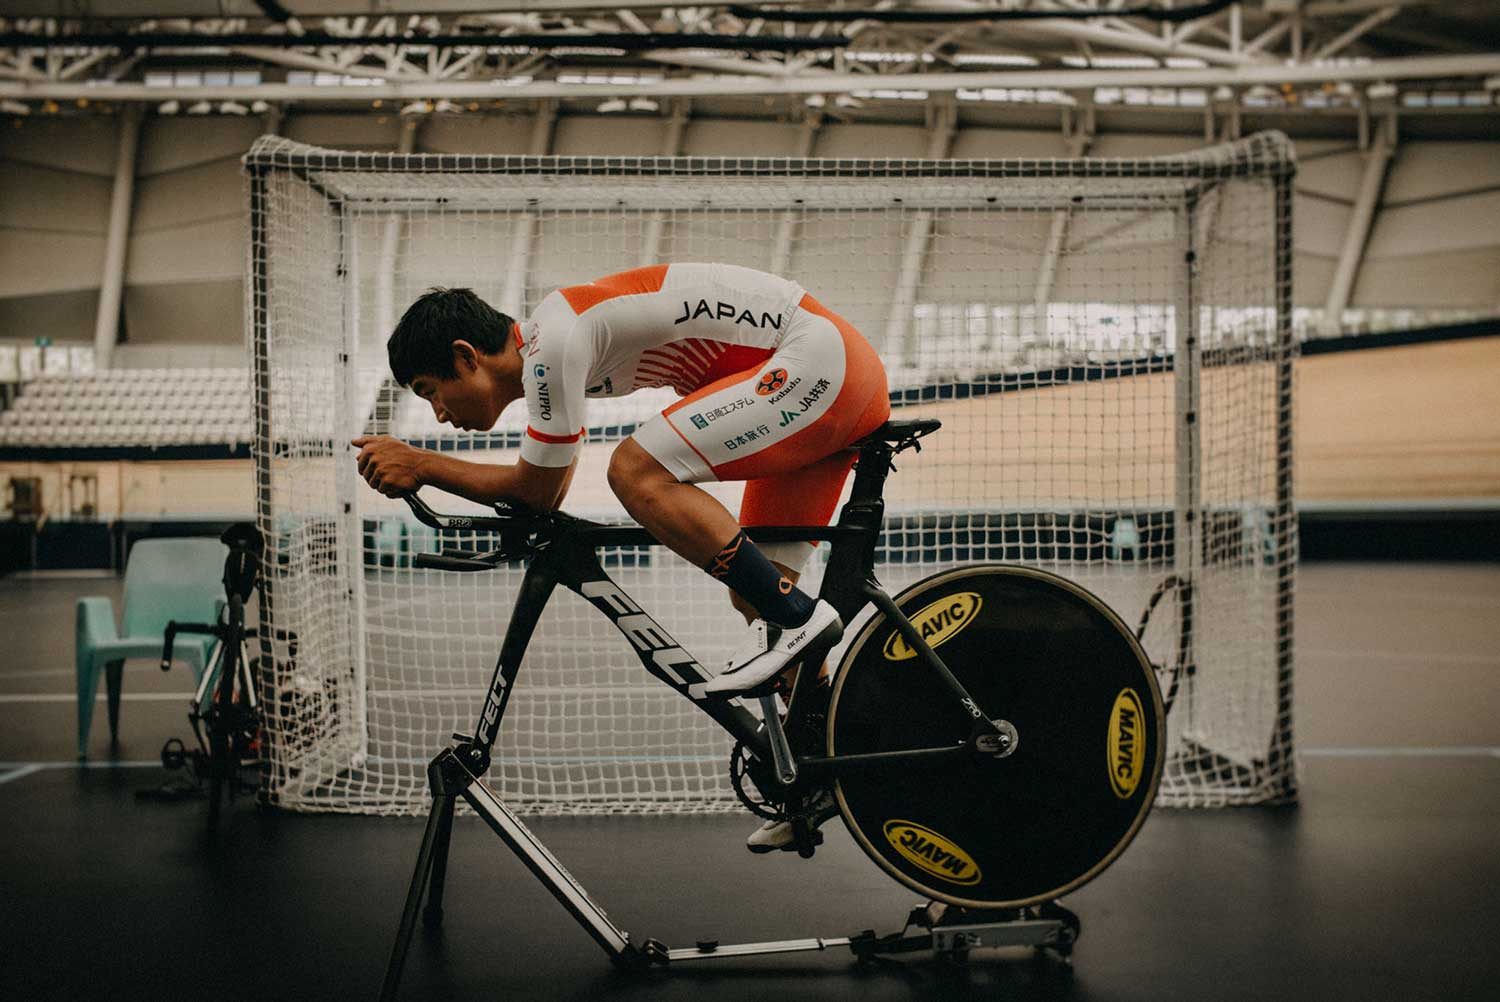 Japanese track cyclist trains on static bike with aerobars at velodrome during training session